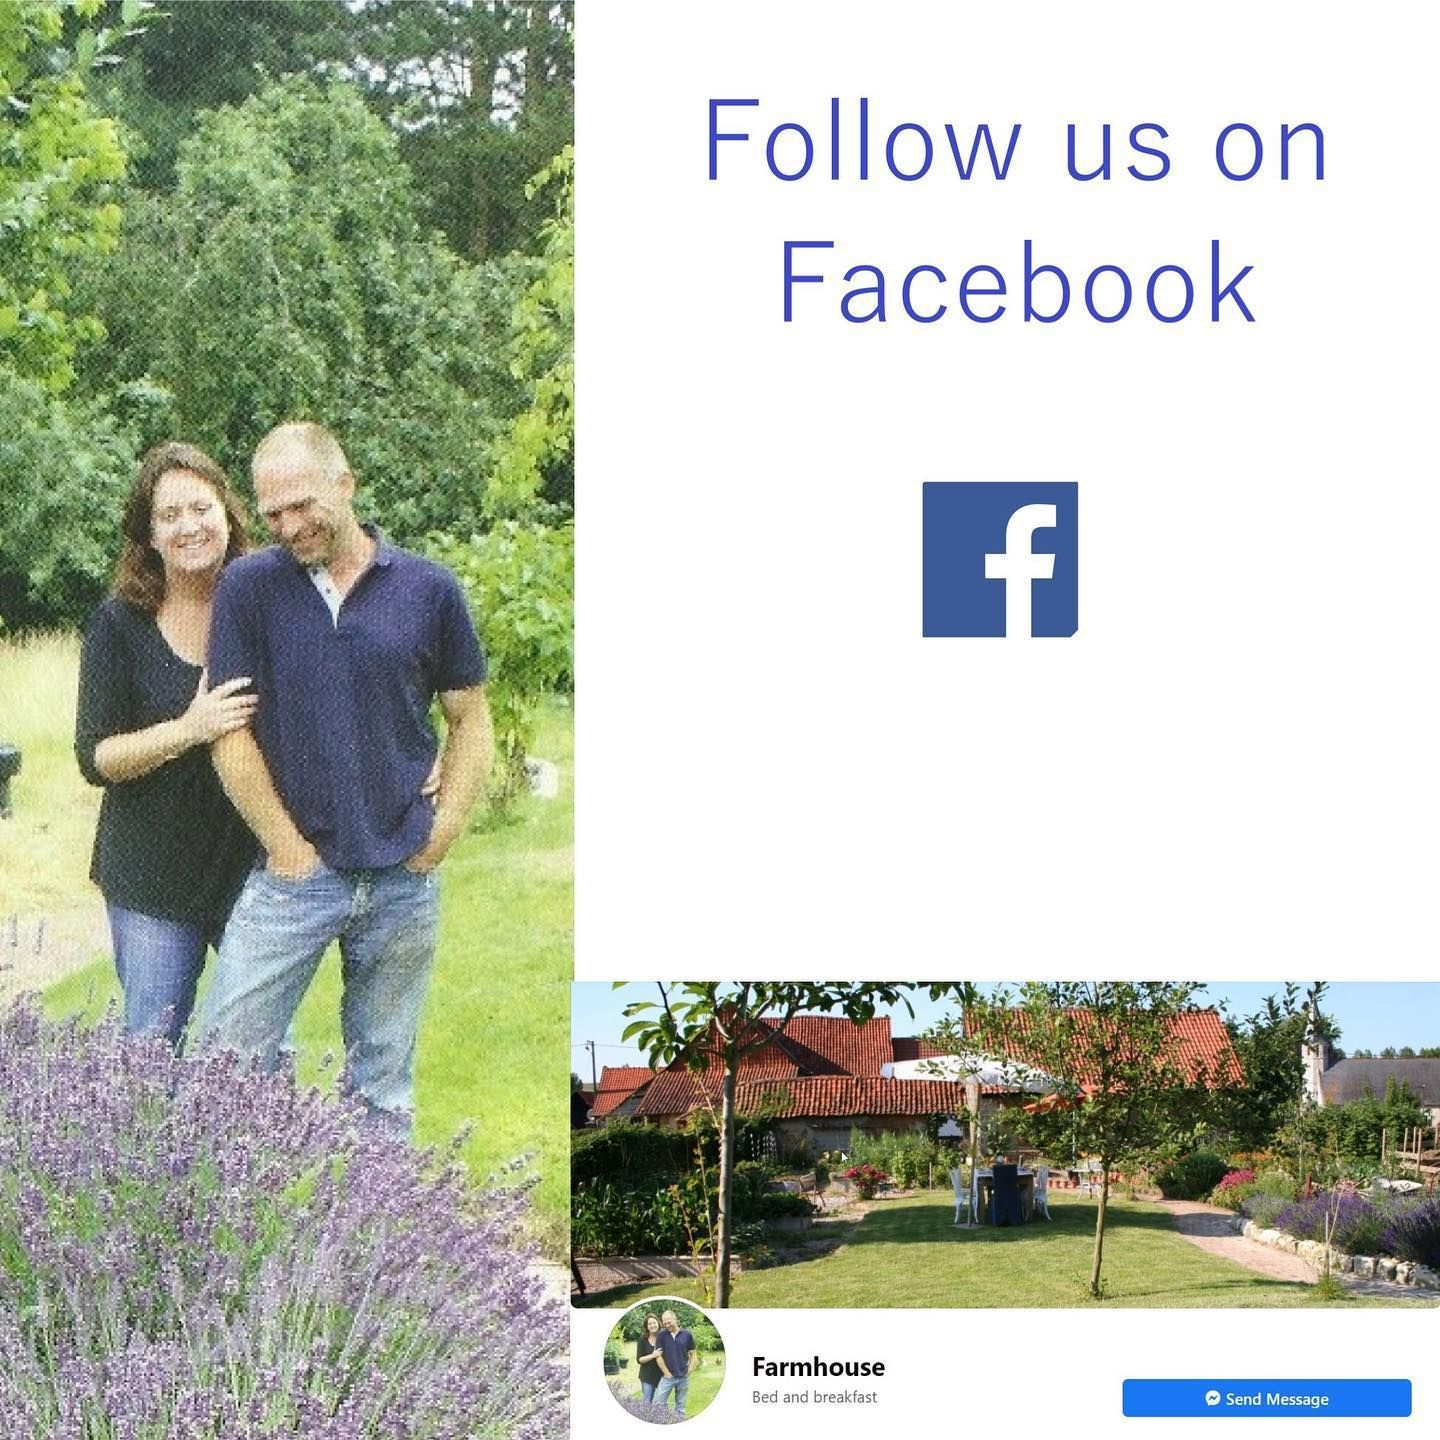 Follow our Facebook page at